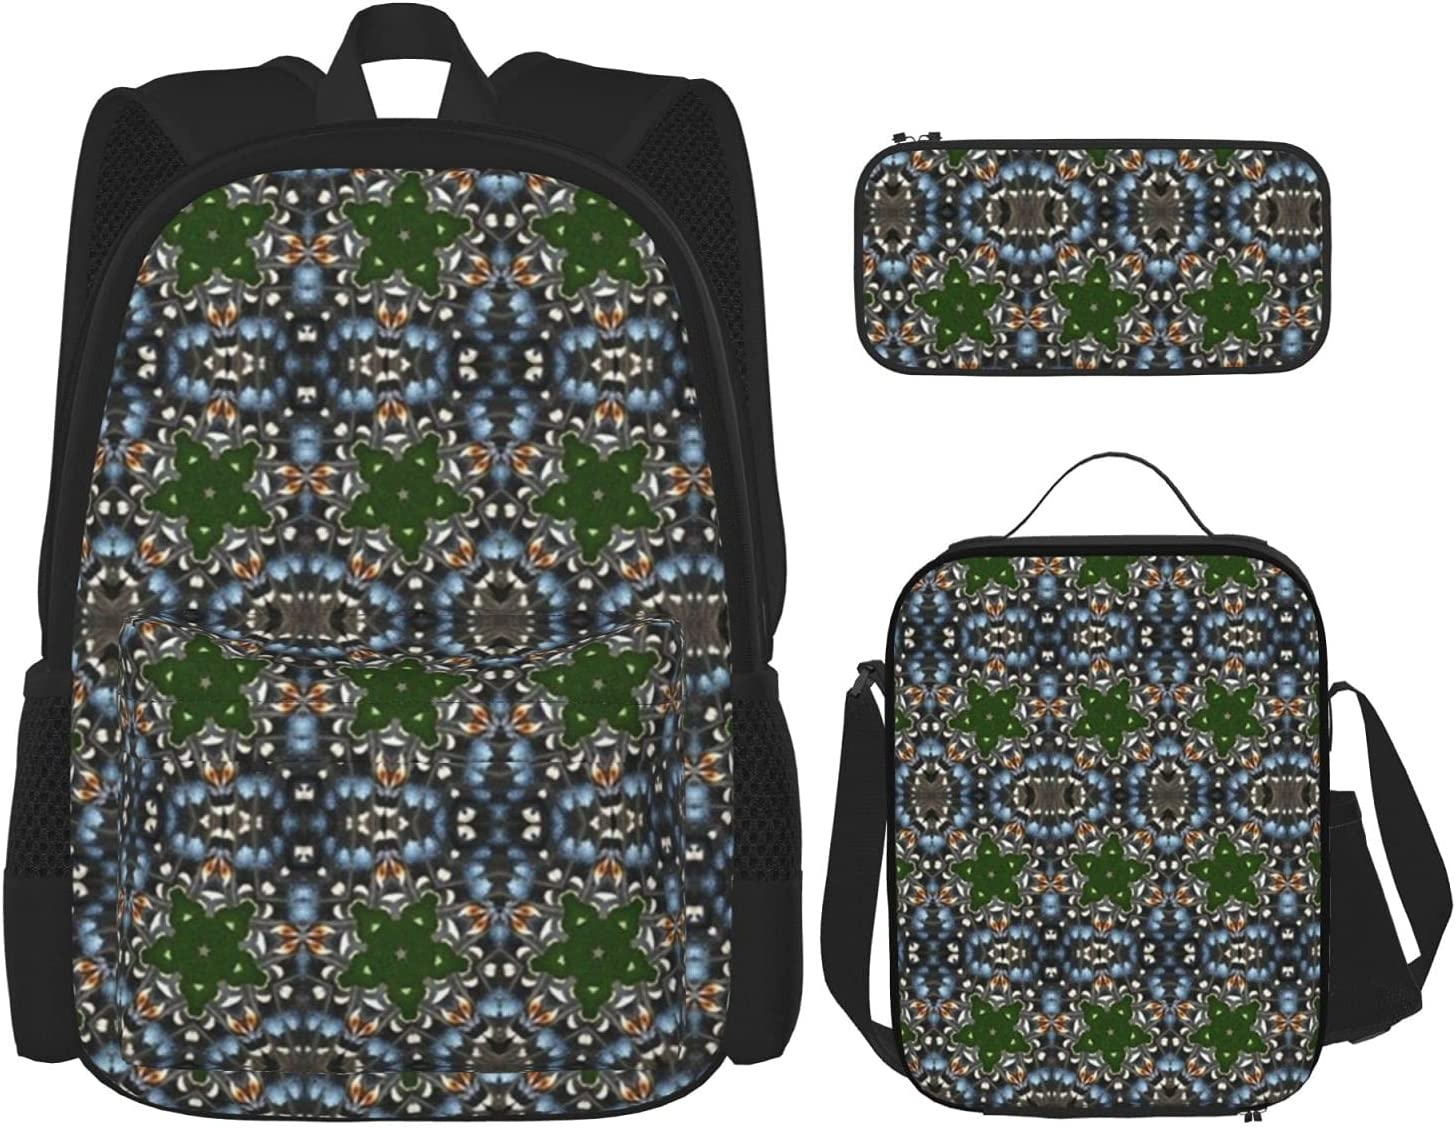 Backpack Bags Sales of SALE items from new works Black Popular standard Swallowtail Bag with Lunch P Case Pencil